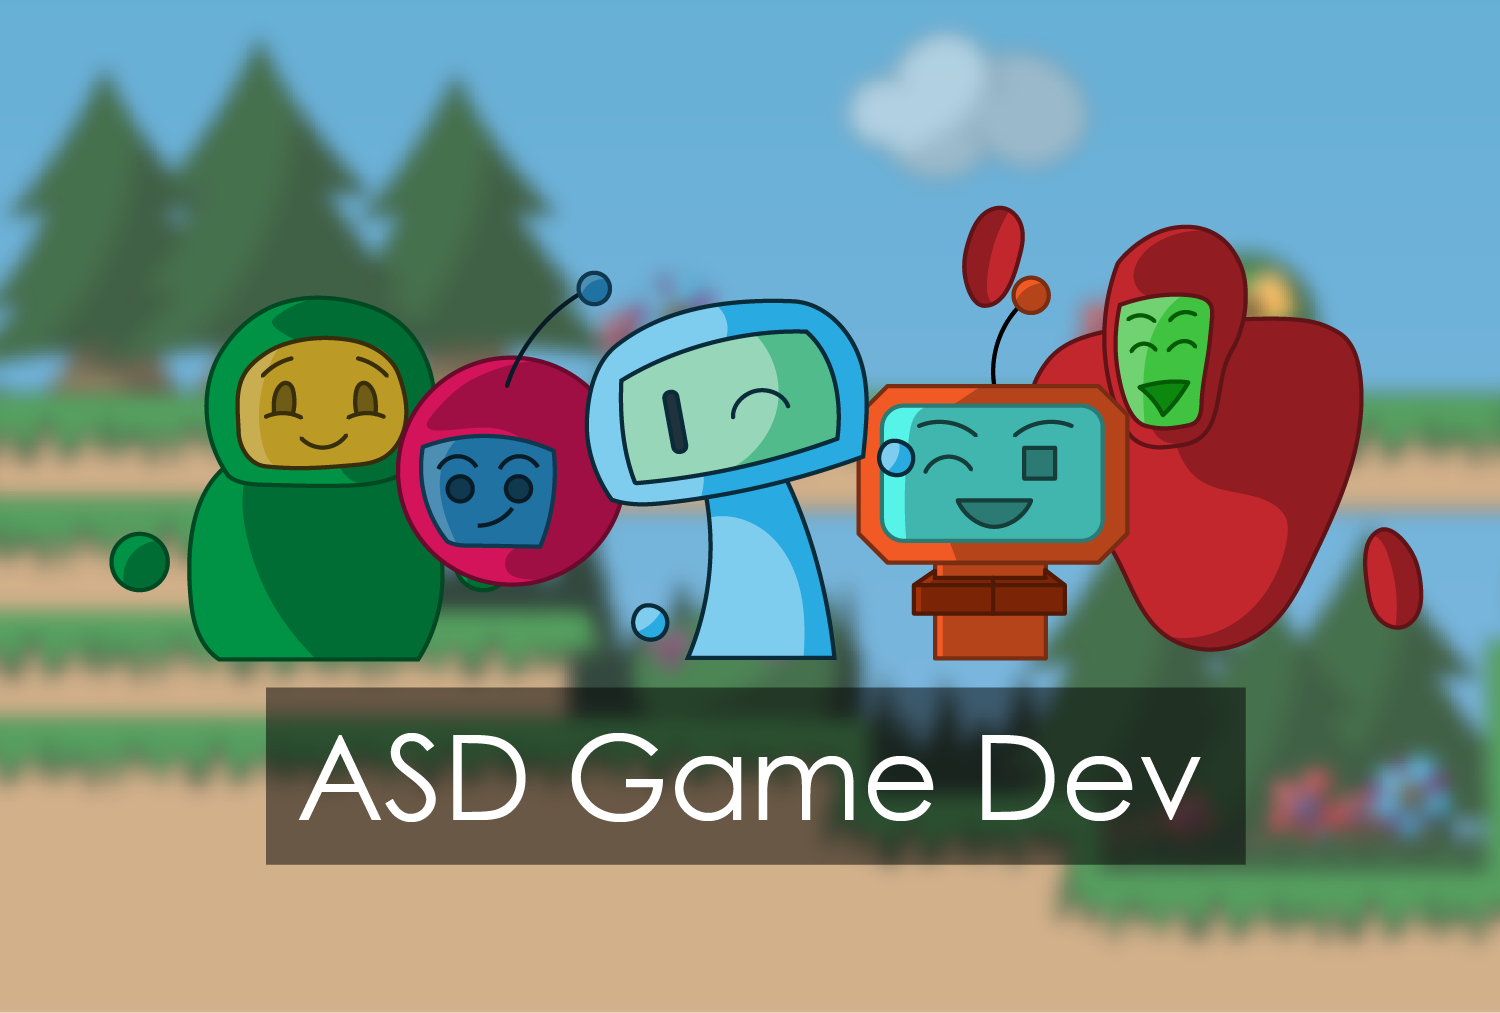 ASD Game Dev